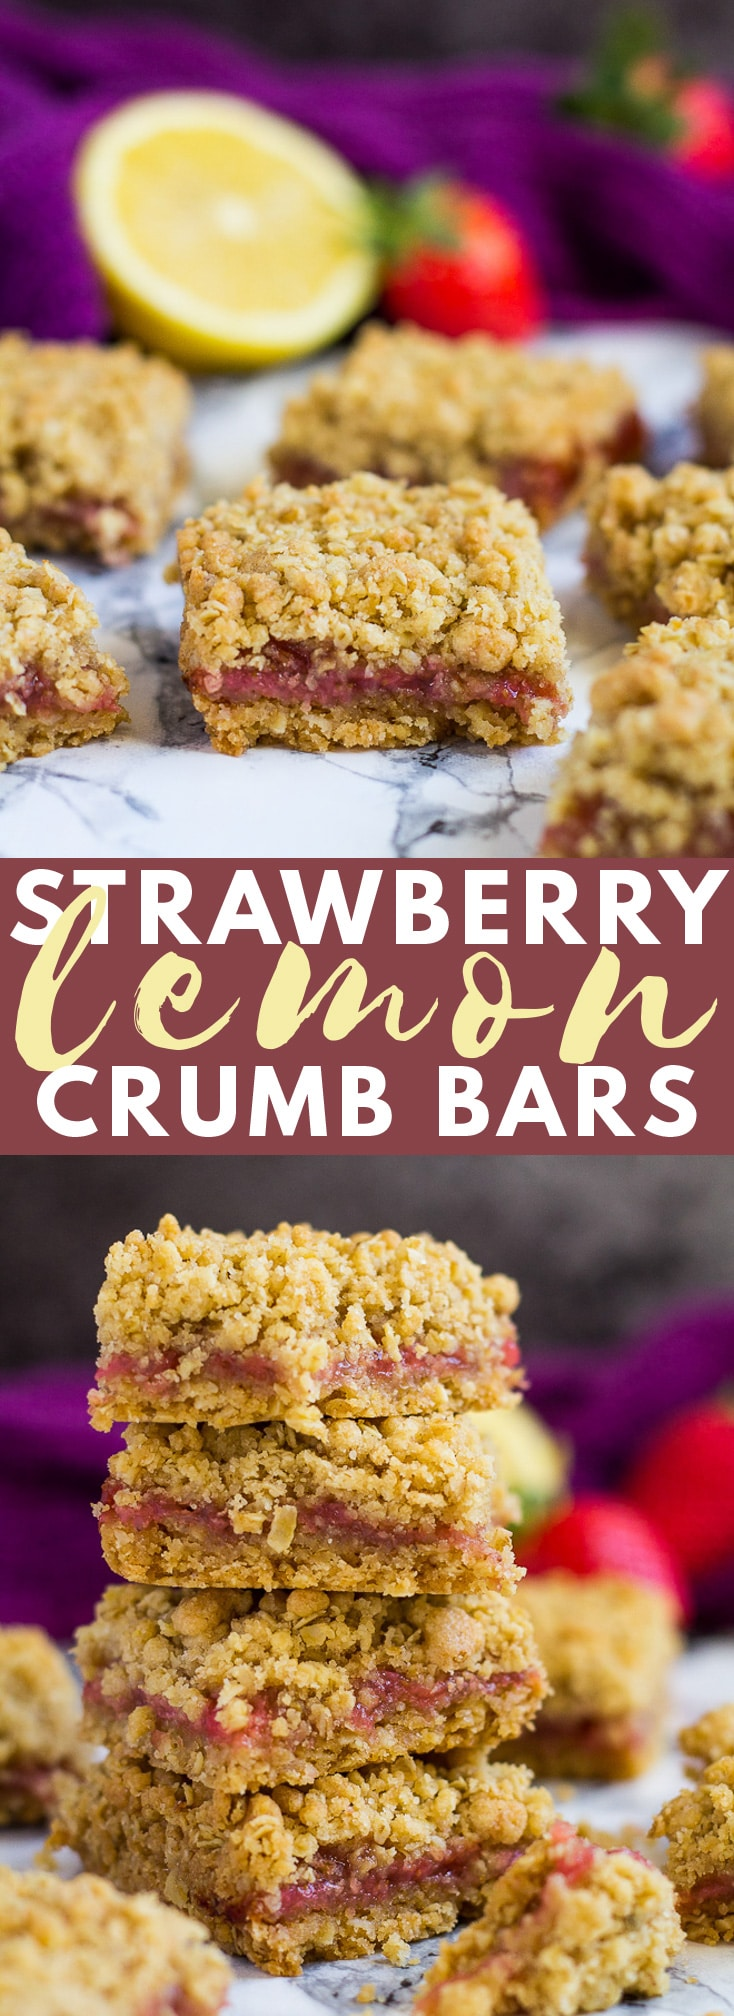 Strawberry Lemon Crumb Bars - Deliciously thick and chewy bars that are oh so buttery and crumbly, and filled with homemade strawberry lemon jam! #strawberry #lemon #crumbbars #recipe